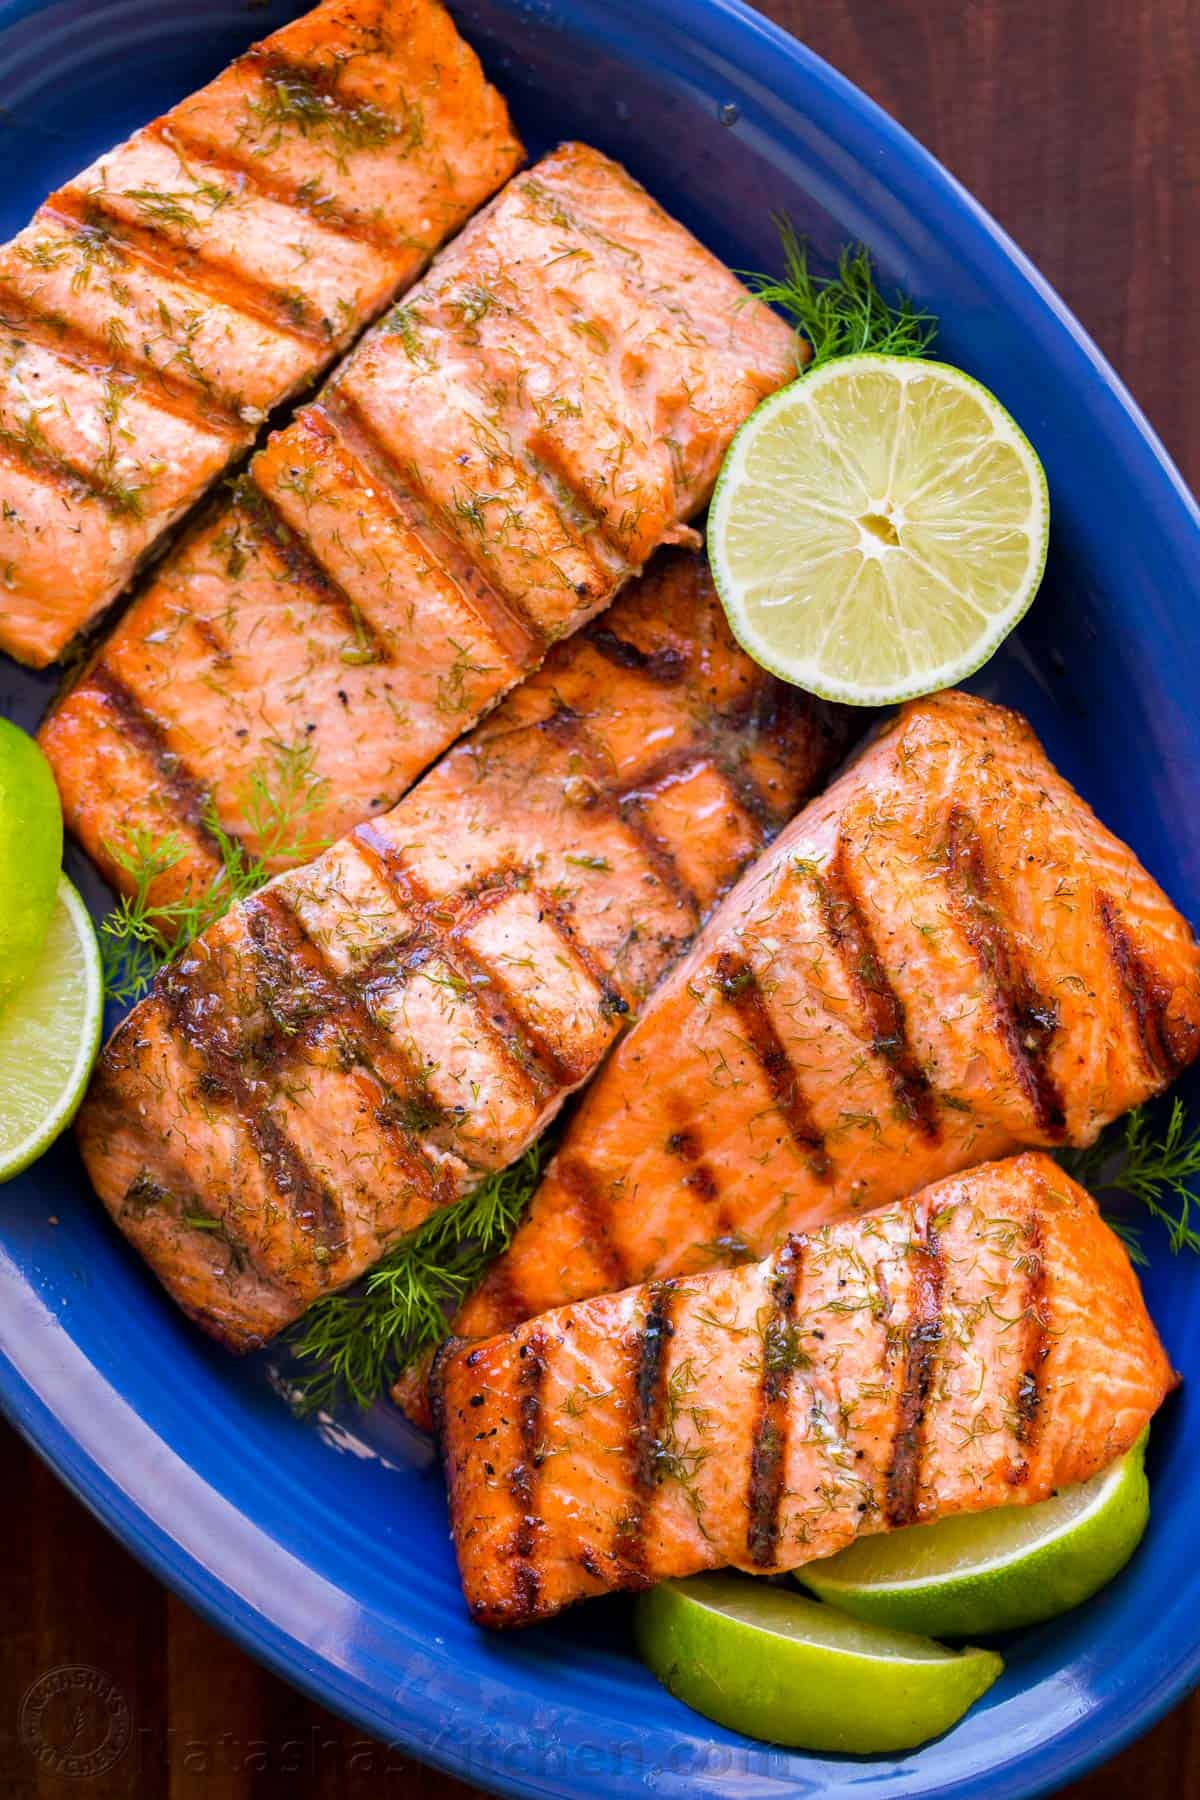 Grilled Salmon with Garlic Lime Butter - NatashasKitchen.com